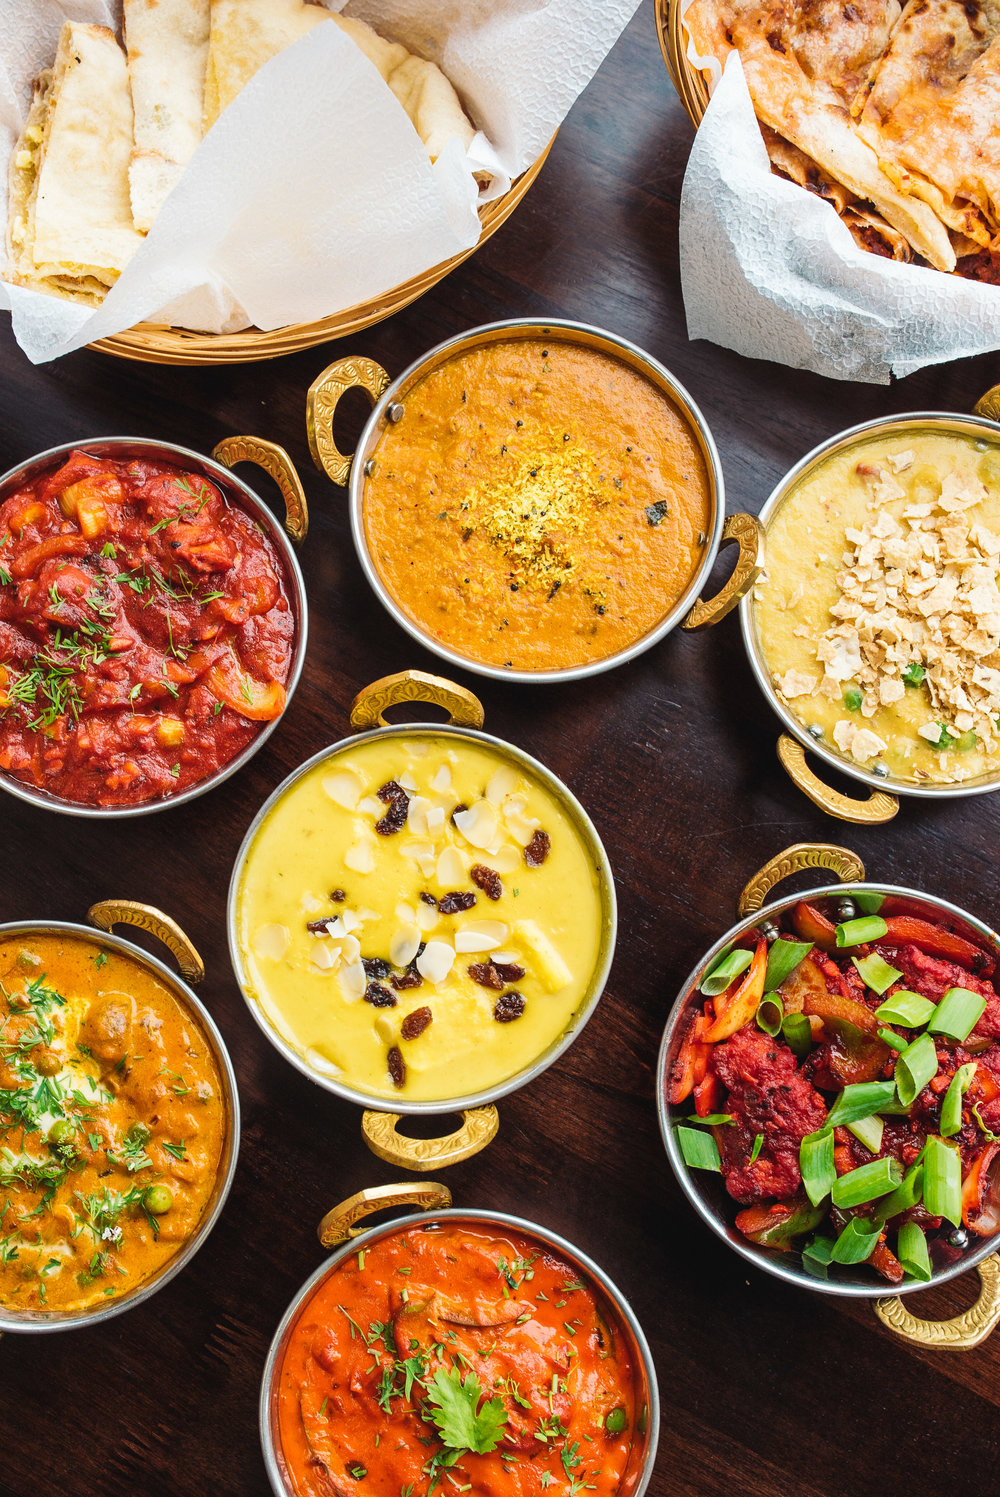 $12 CURRY NIGHT - On Sunday nights all curries except seafood are $12 !